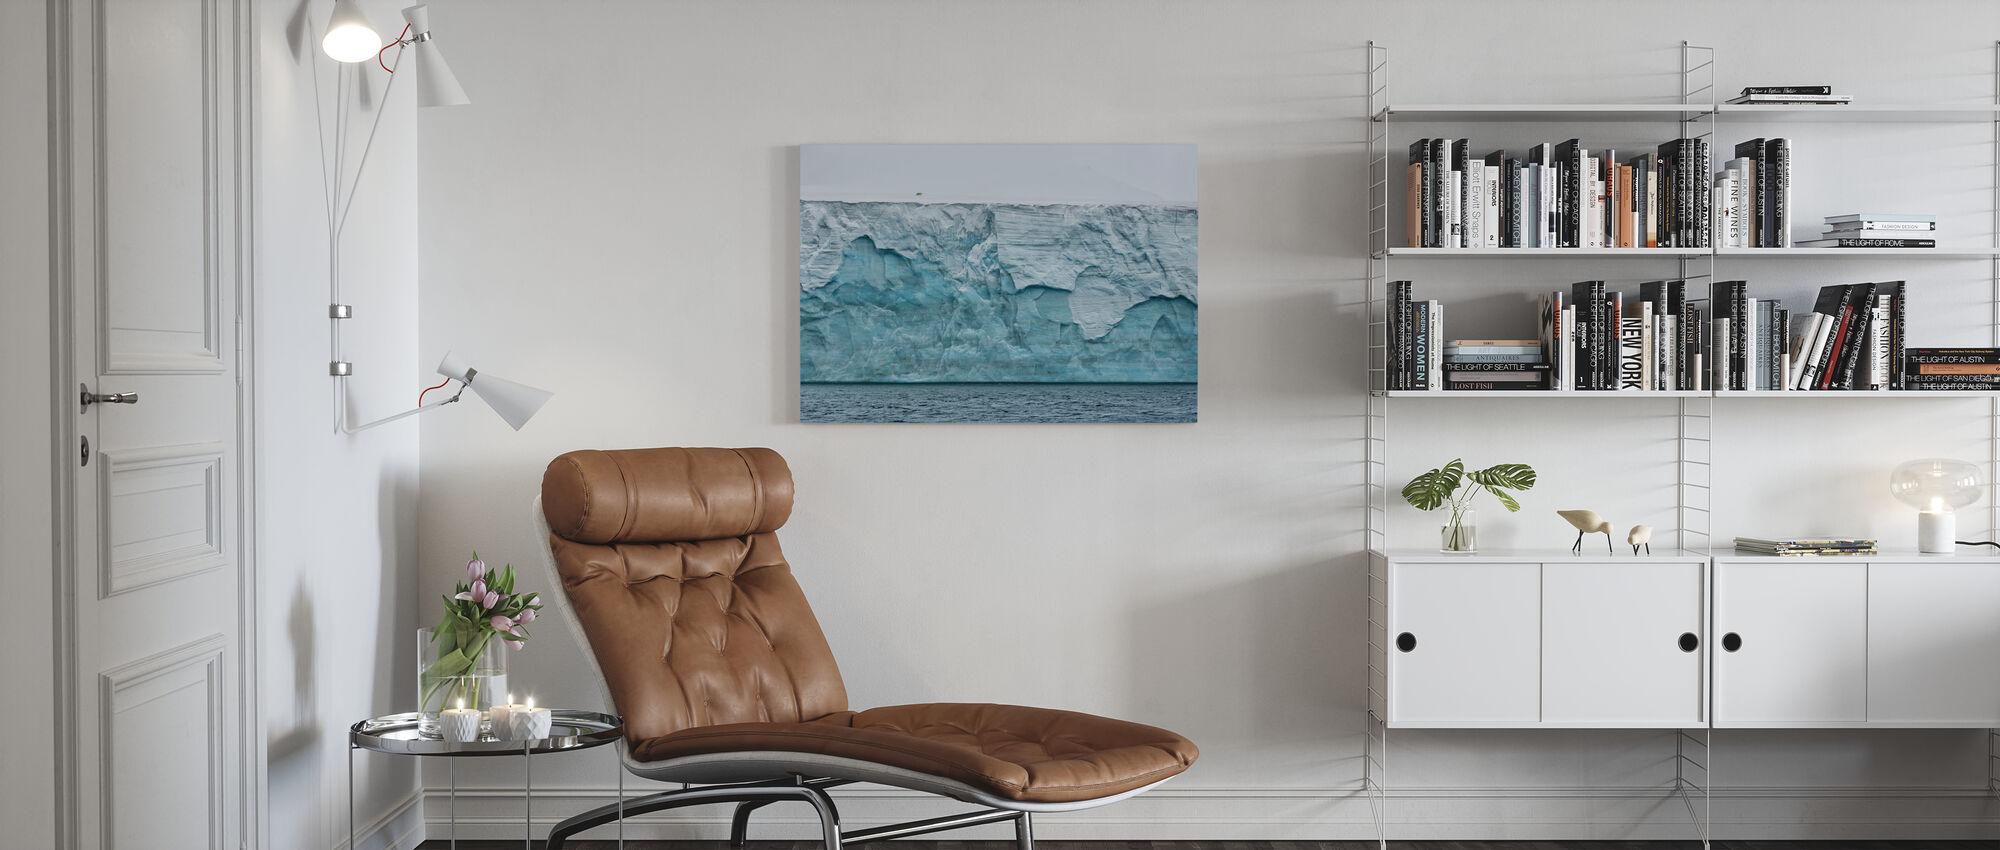 Lonely Polarbear on Glacier - Canvas print - Living Room